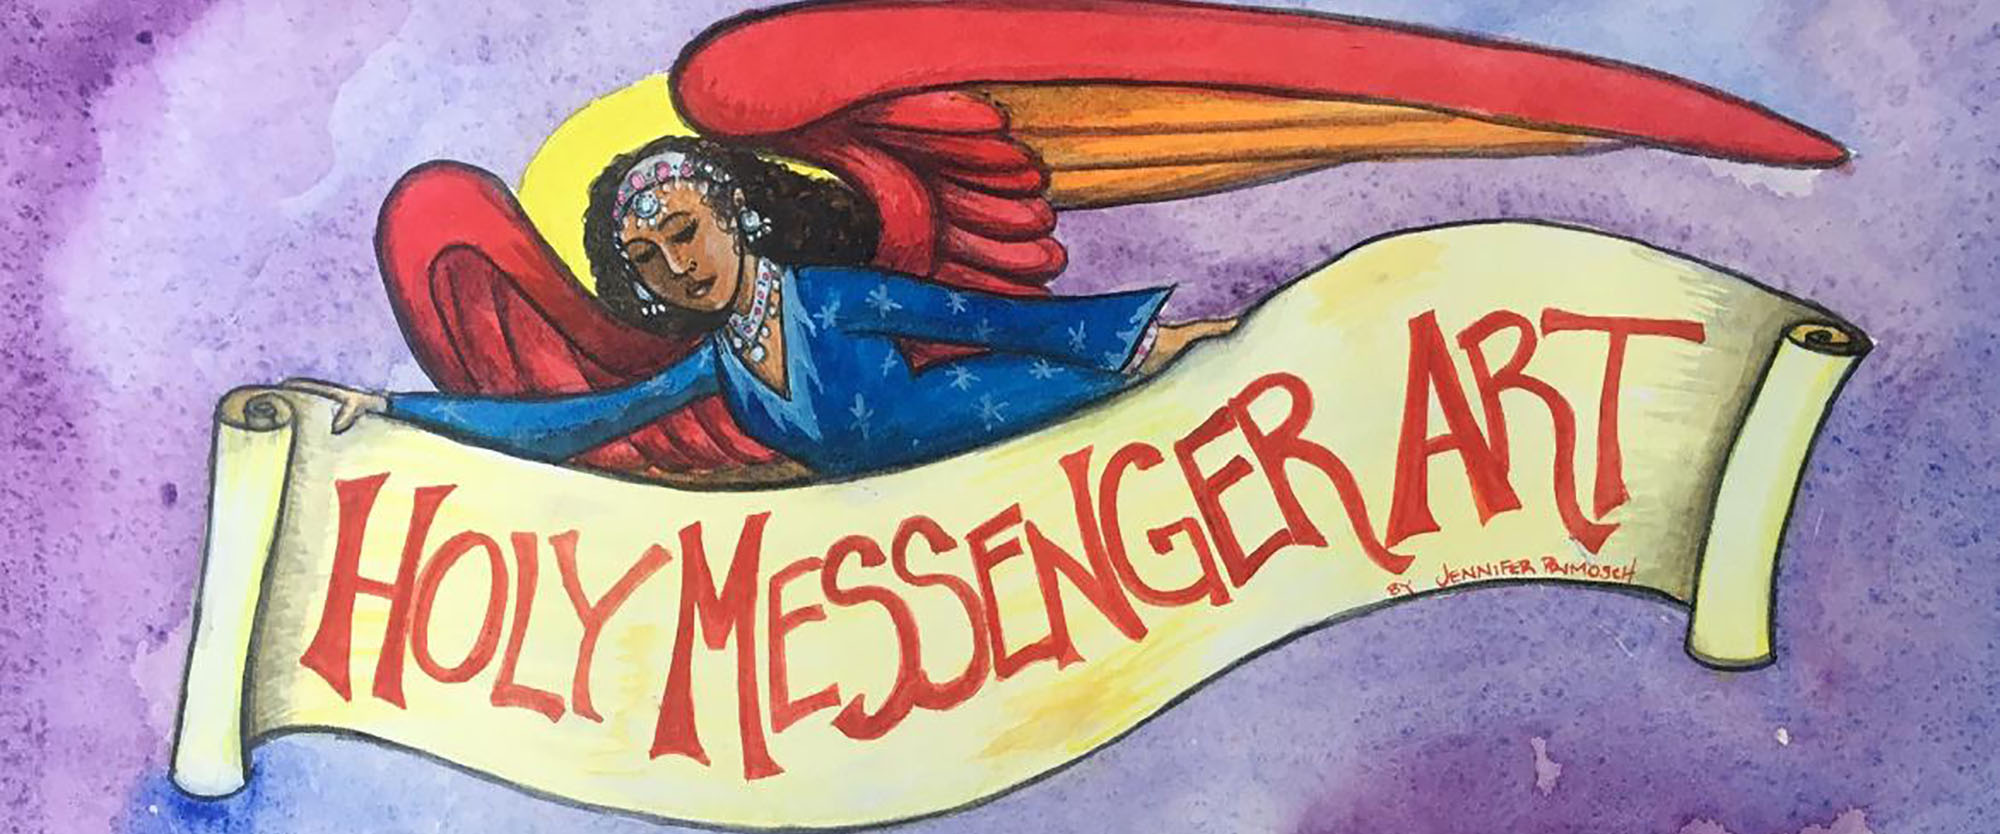 Holy Messenger Art